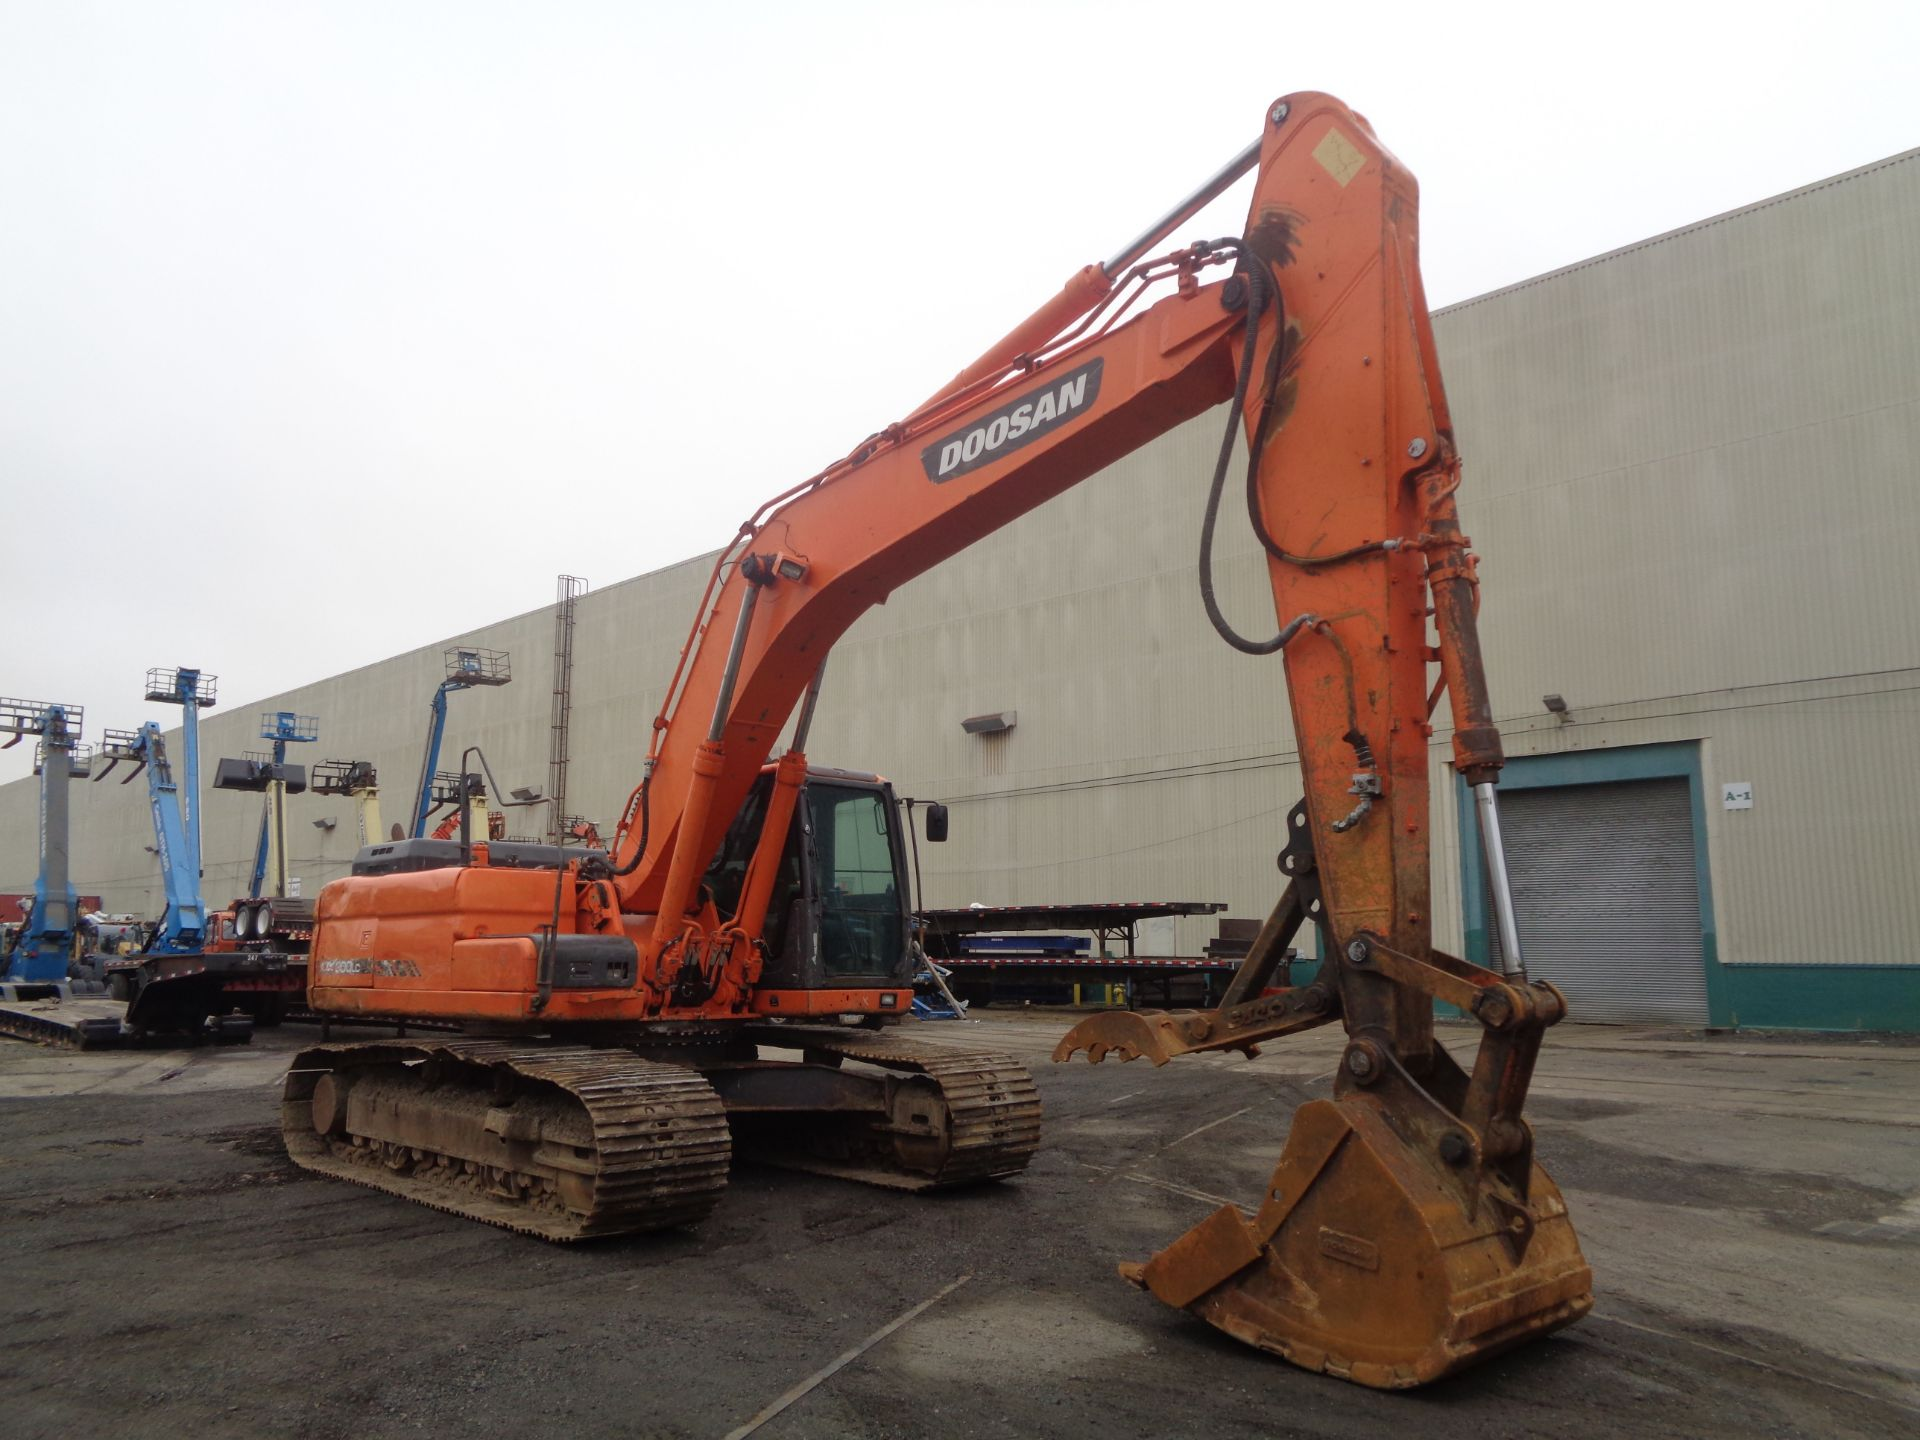 Lot 20 - 2013 Doosan DX300LC-3 Excavator